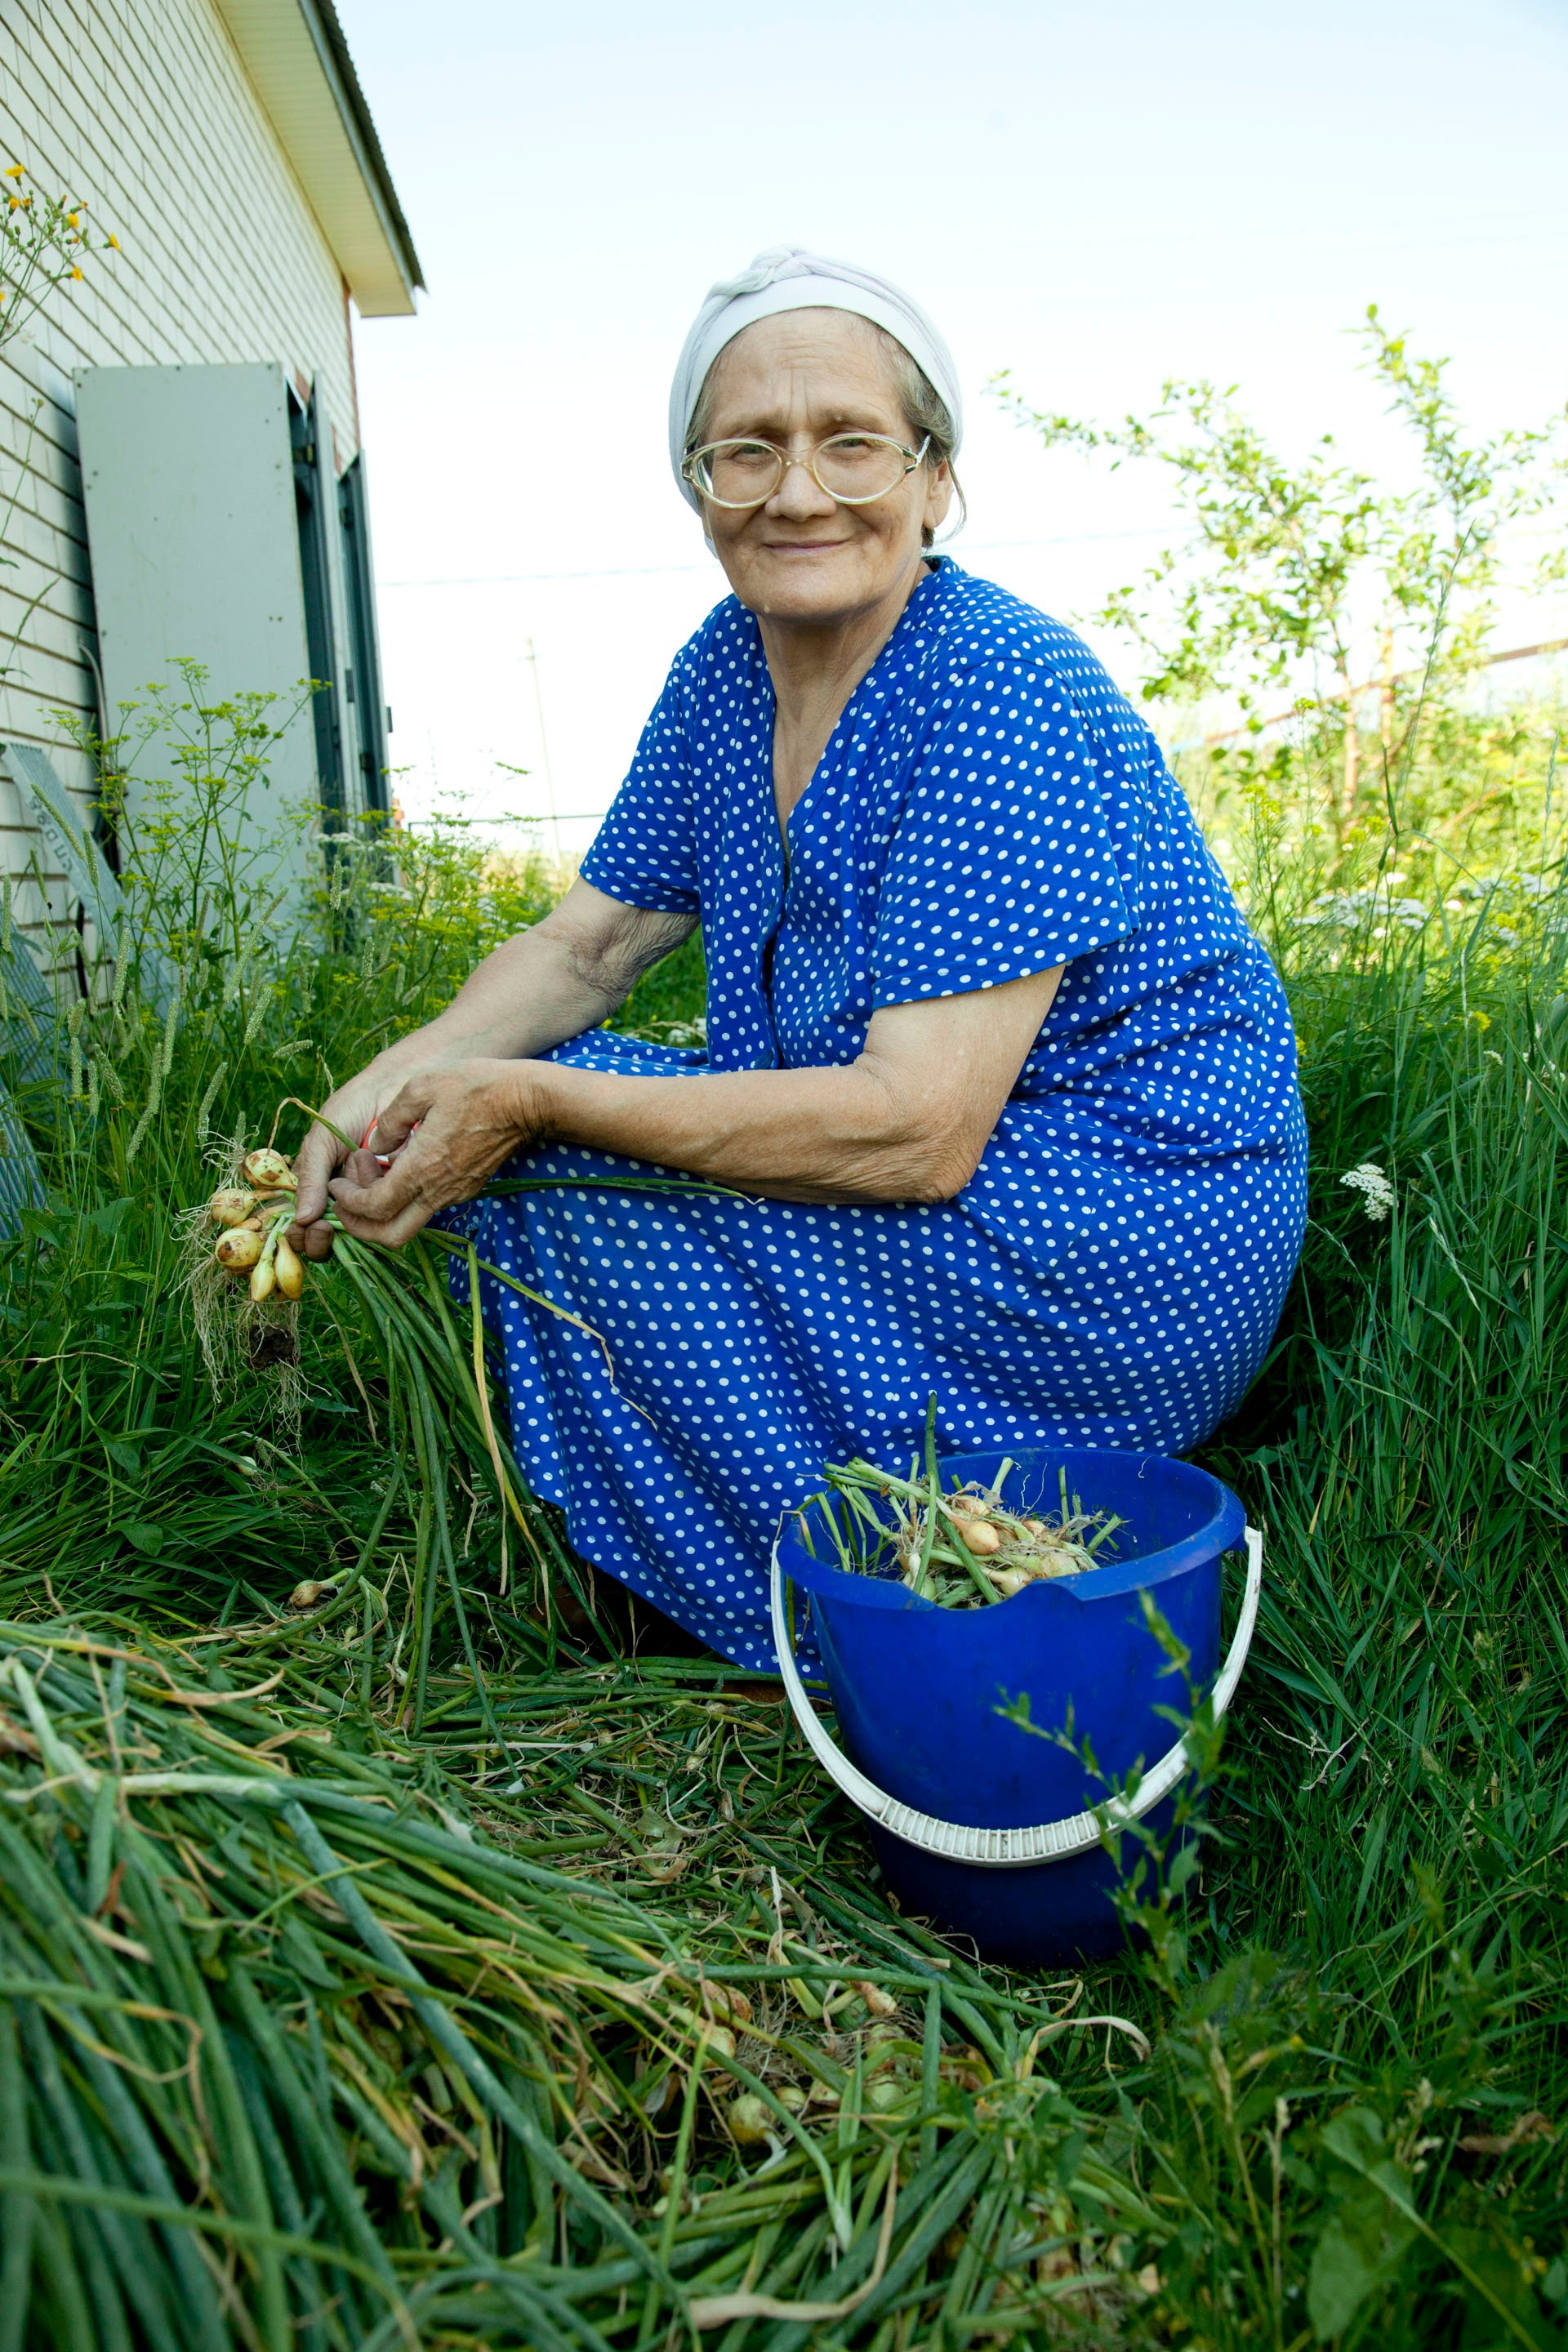 During the harvest season, the babushkas (grandmothers) of Kamskie-Polyani get together and go from home to home to help gather and preserve the large garden plots necessary for survival in this town without an economy